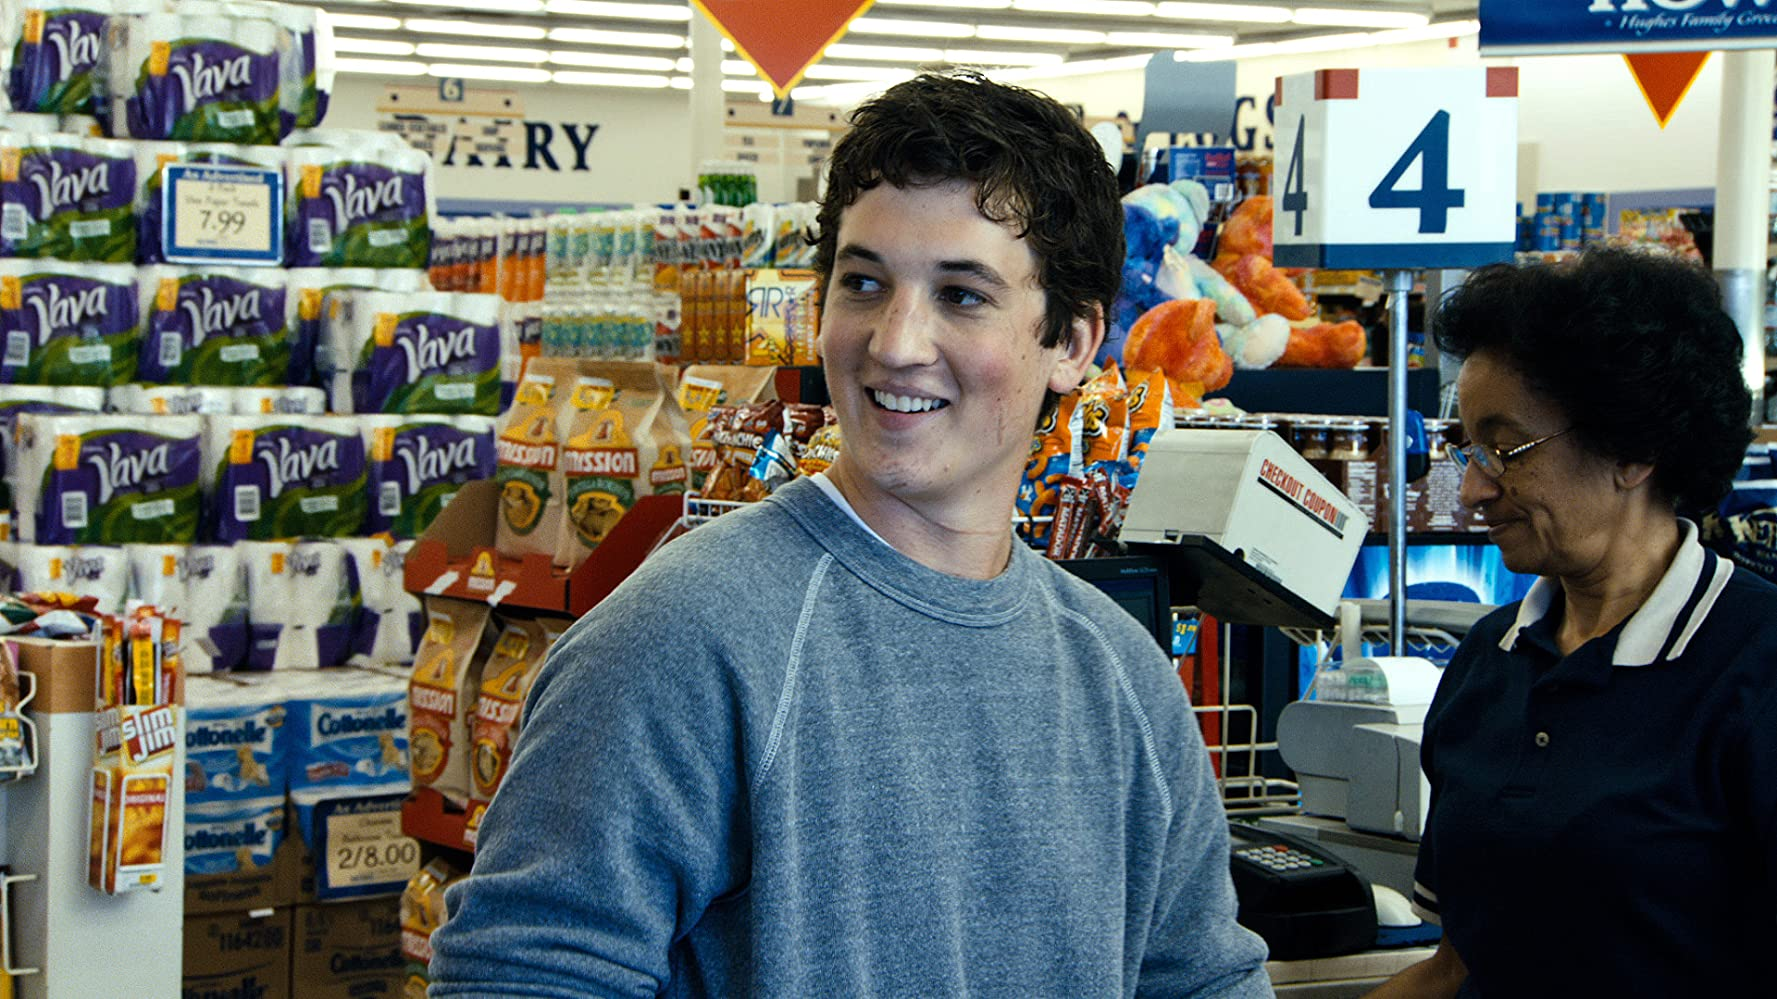 Miles Teller in Project X (2012)